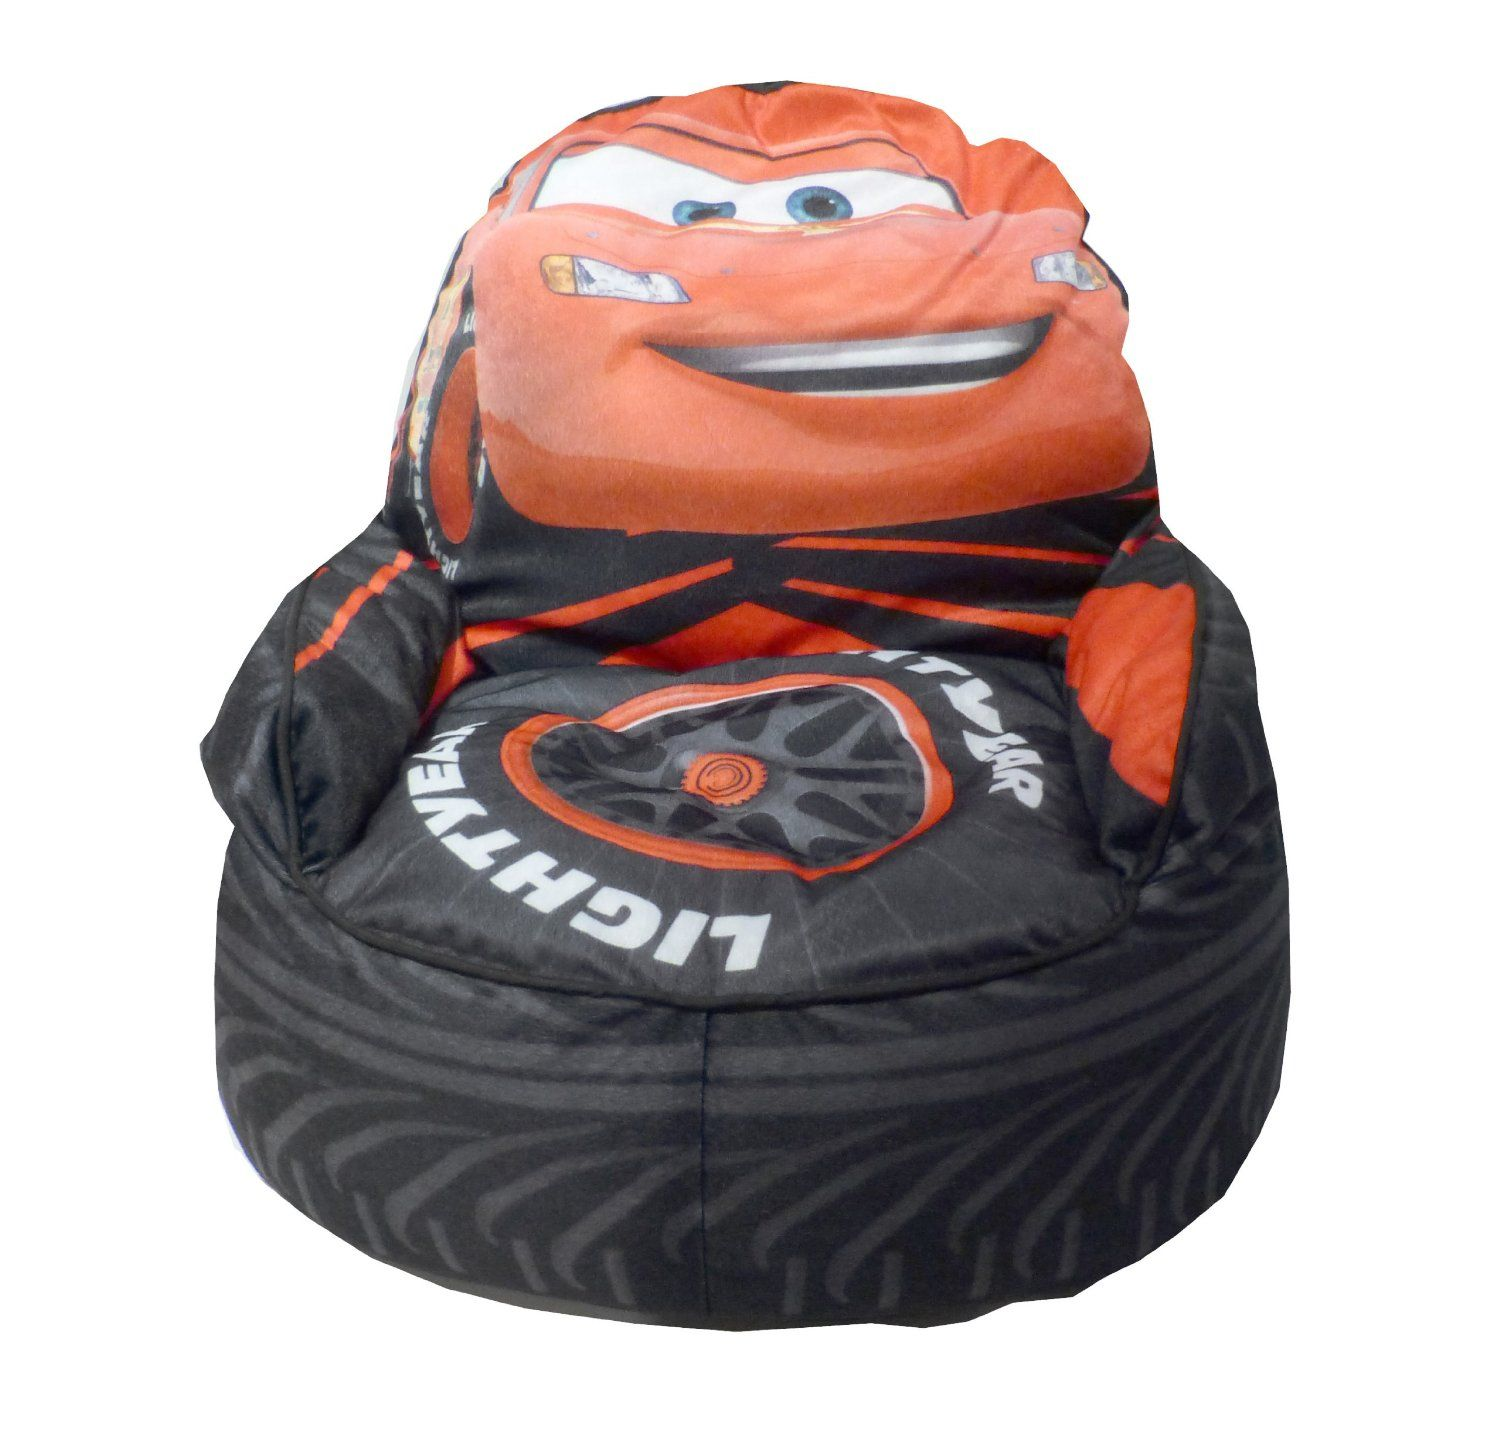 Disney Cars Bean Bag Chair Lightning McQueen